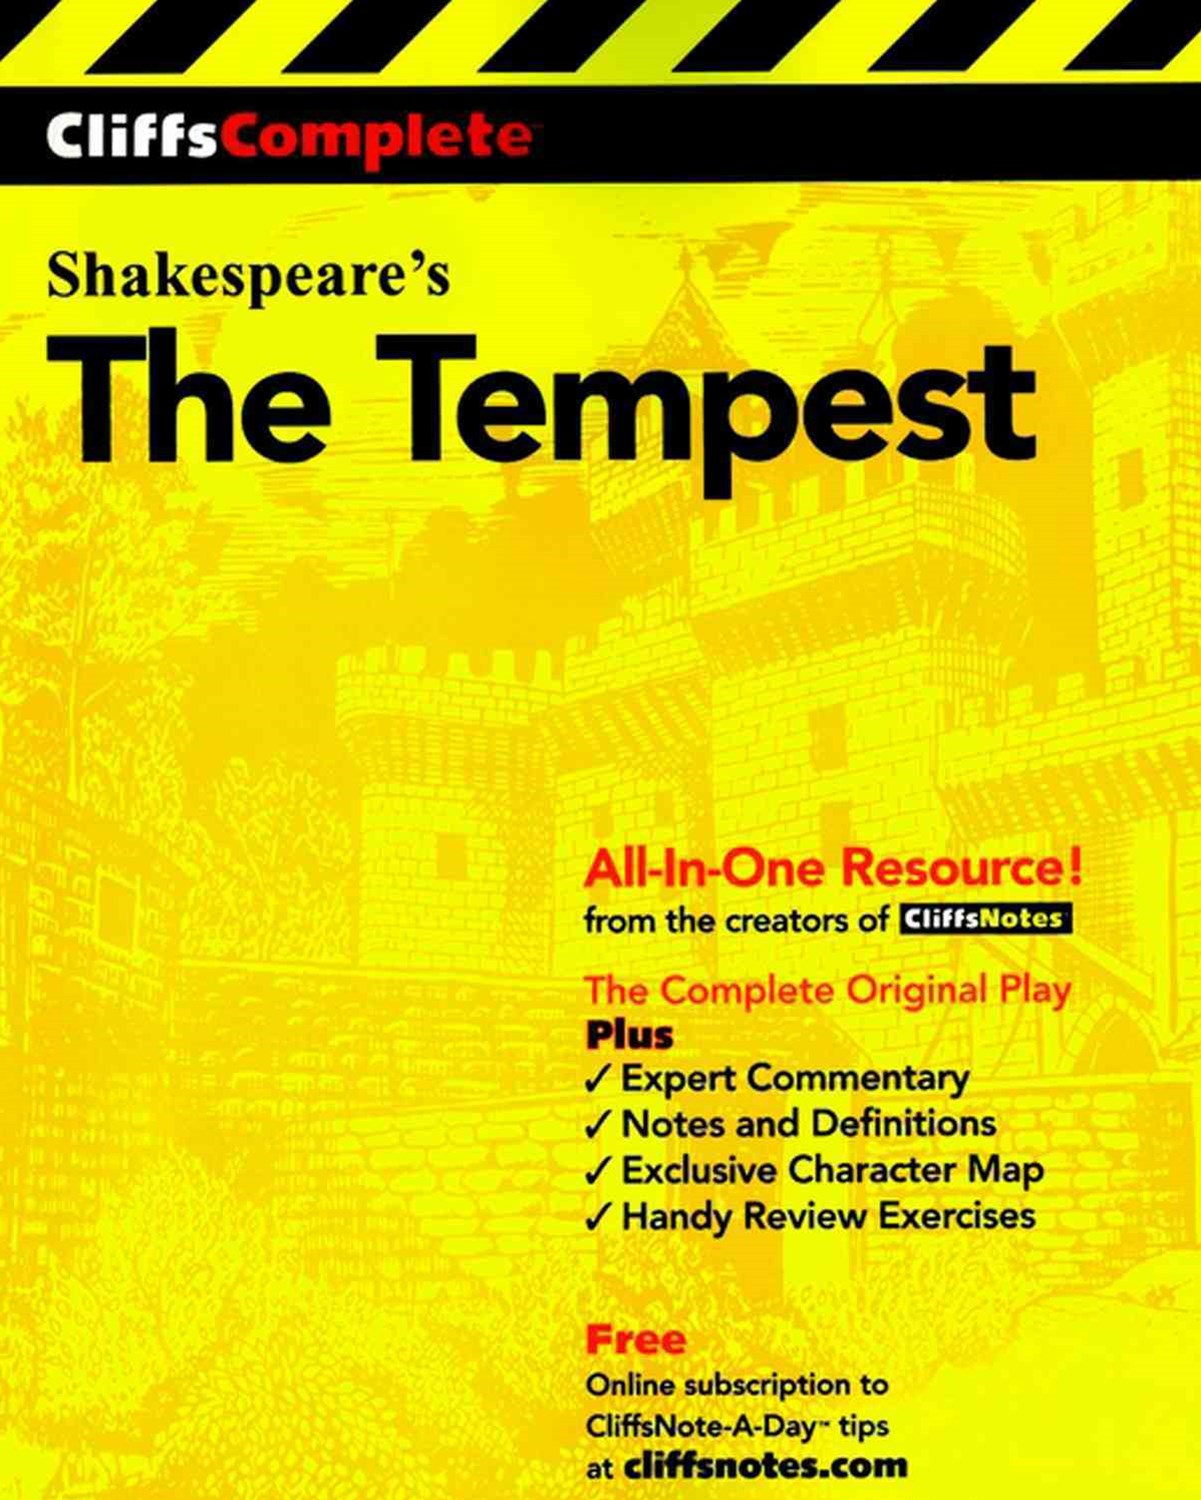 CliffsComplete Shakespeare's The Tempest